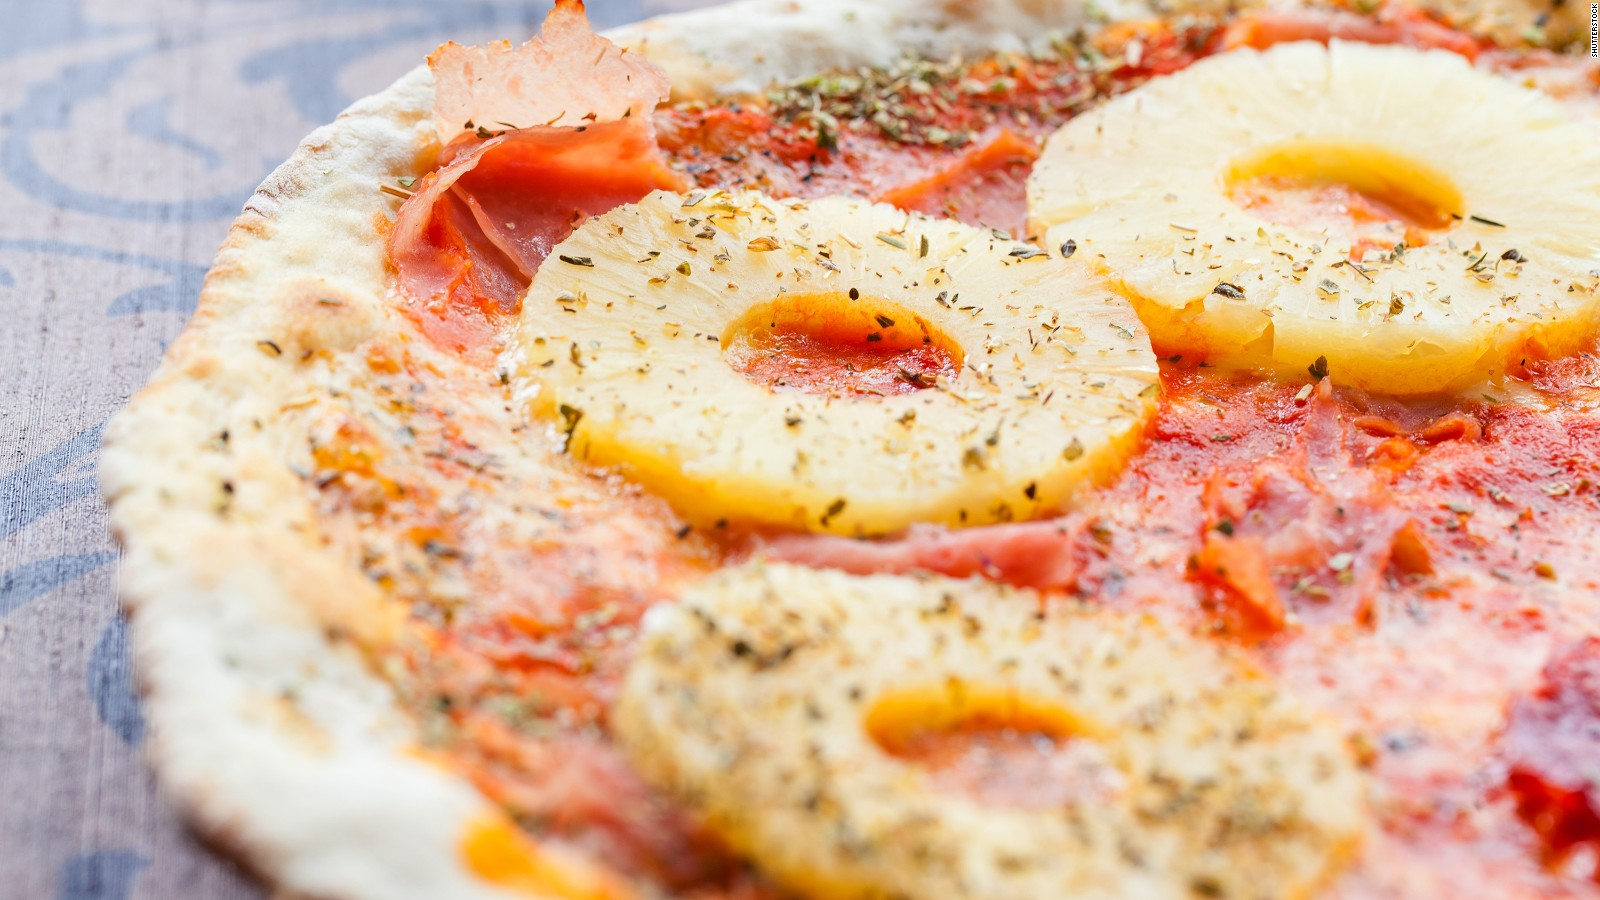 iceland u0027s president would ban pineapple pizza cnn travel